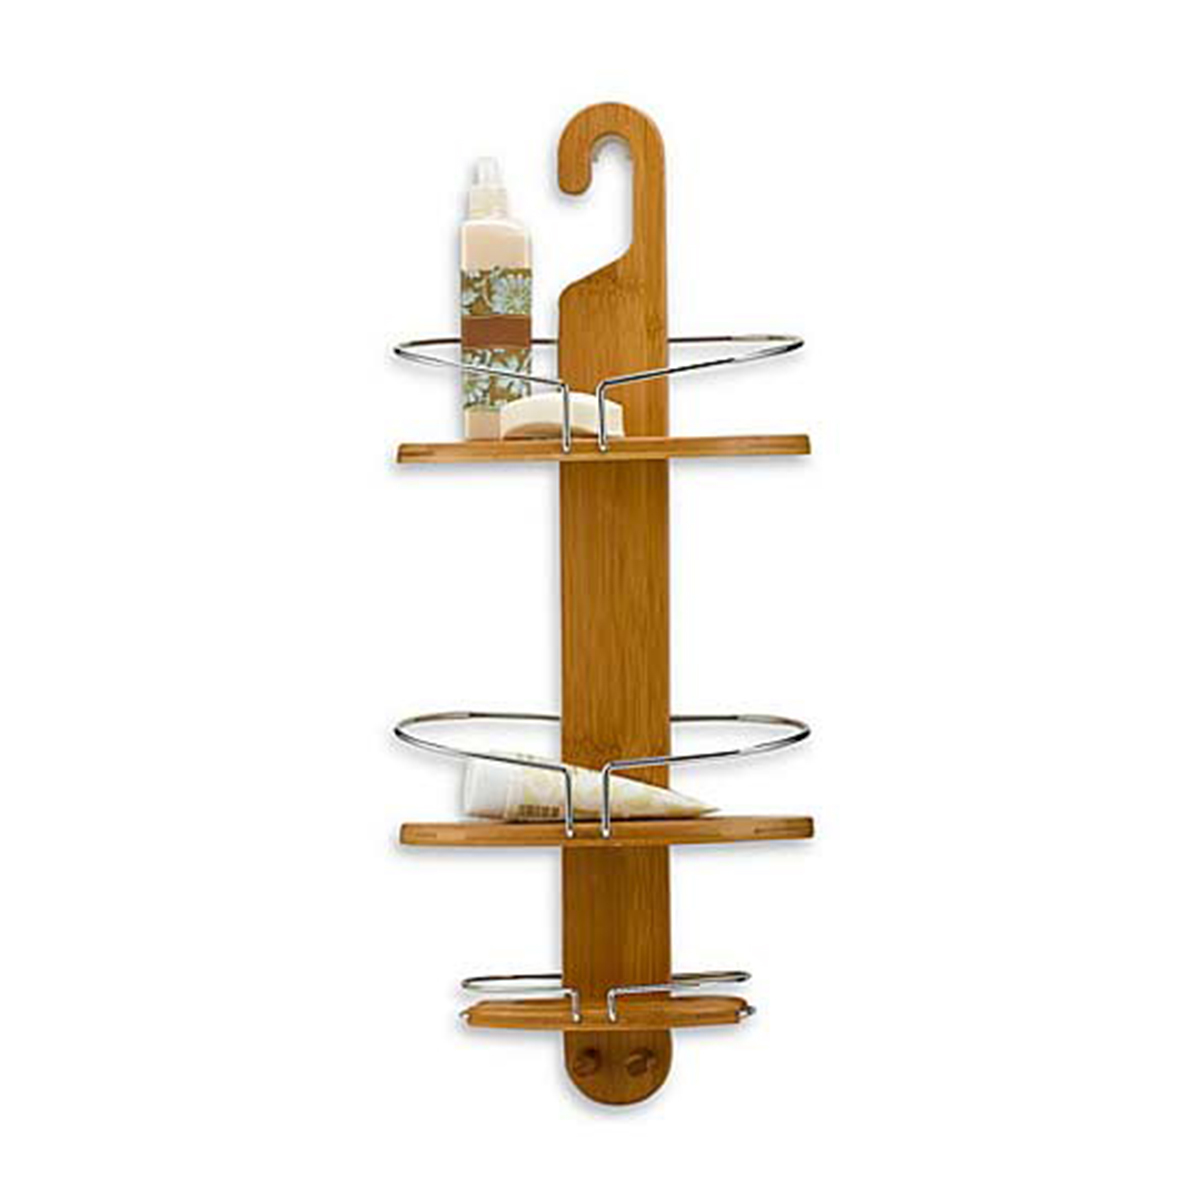 Bed Bath & Beyond bamboo shower caddy photo